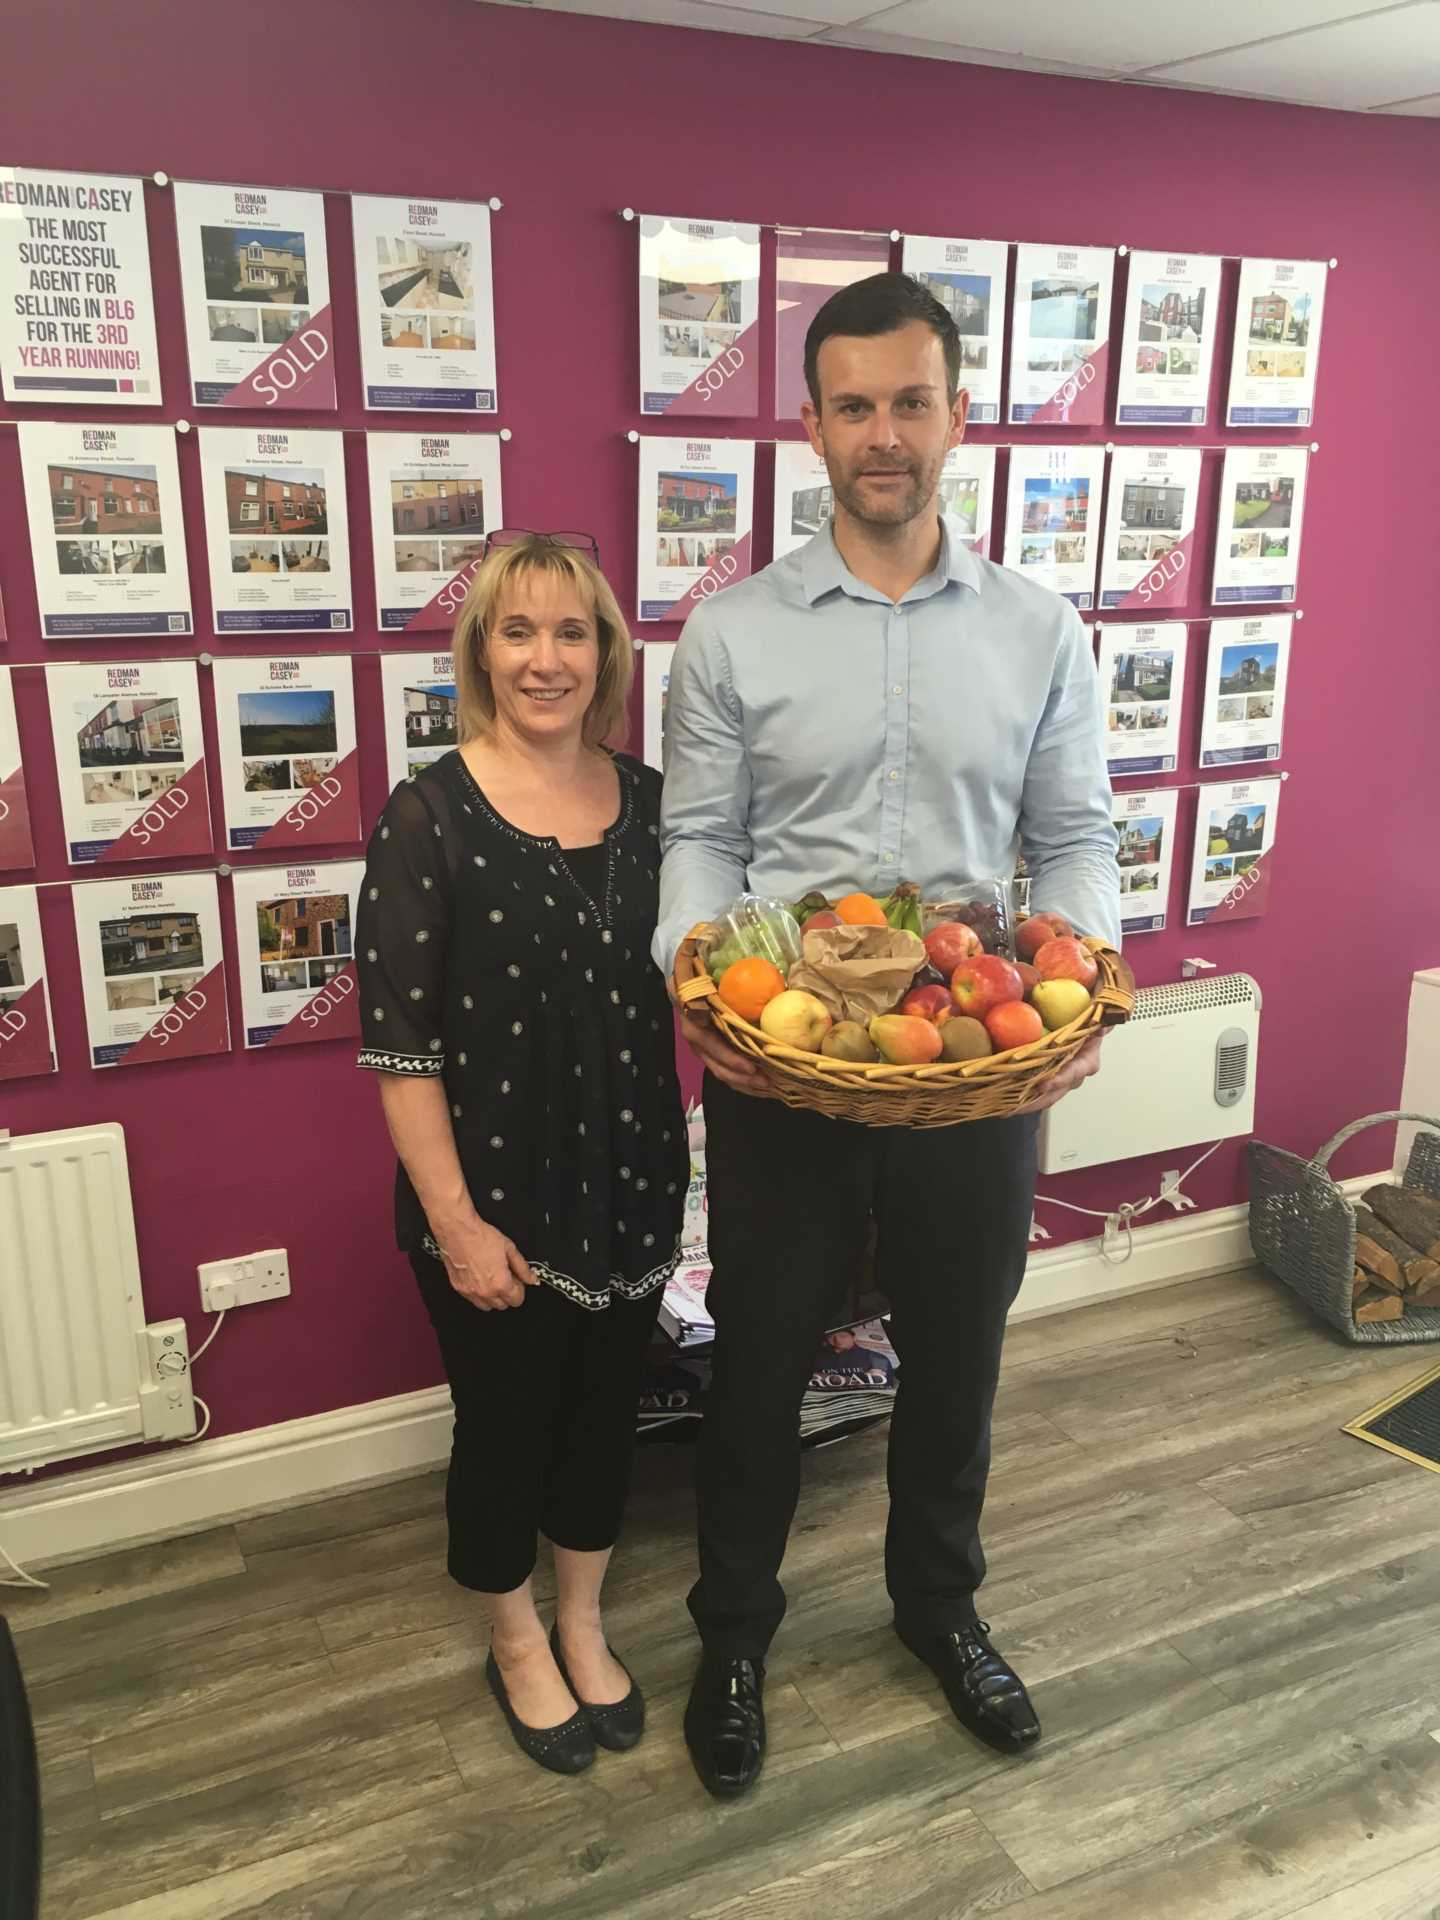 Thank you for lovely Fruit Basket from Sue & Doug our Happy Sellers